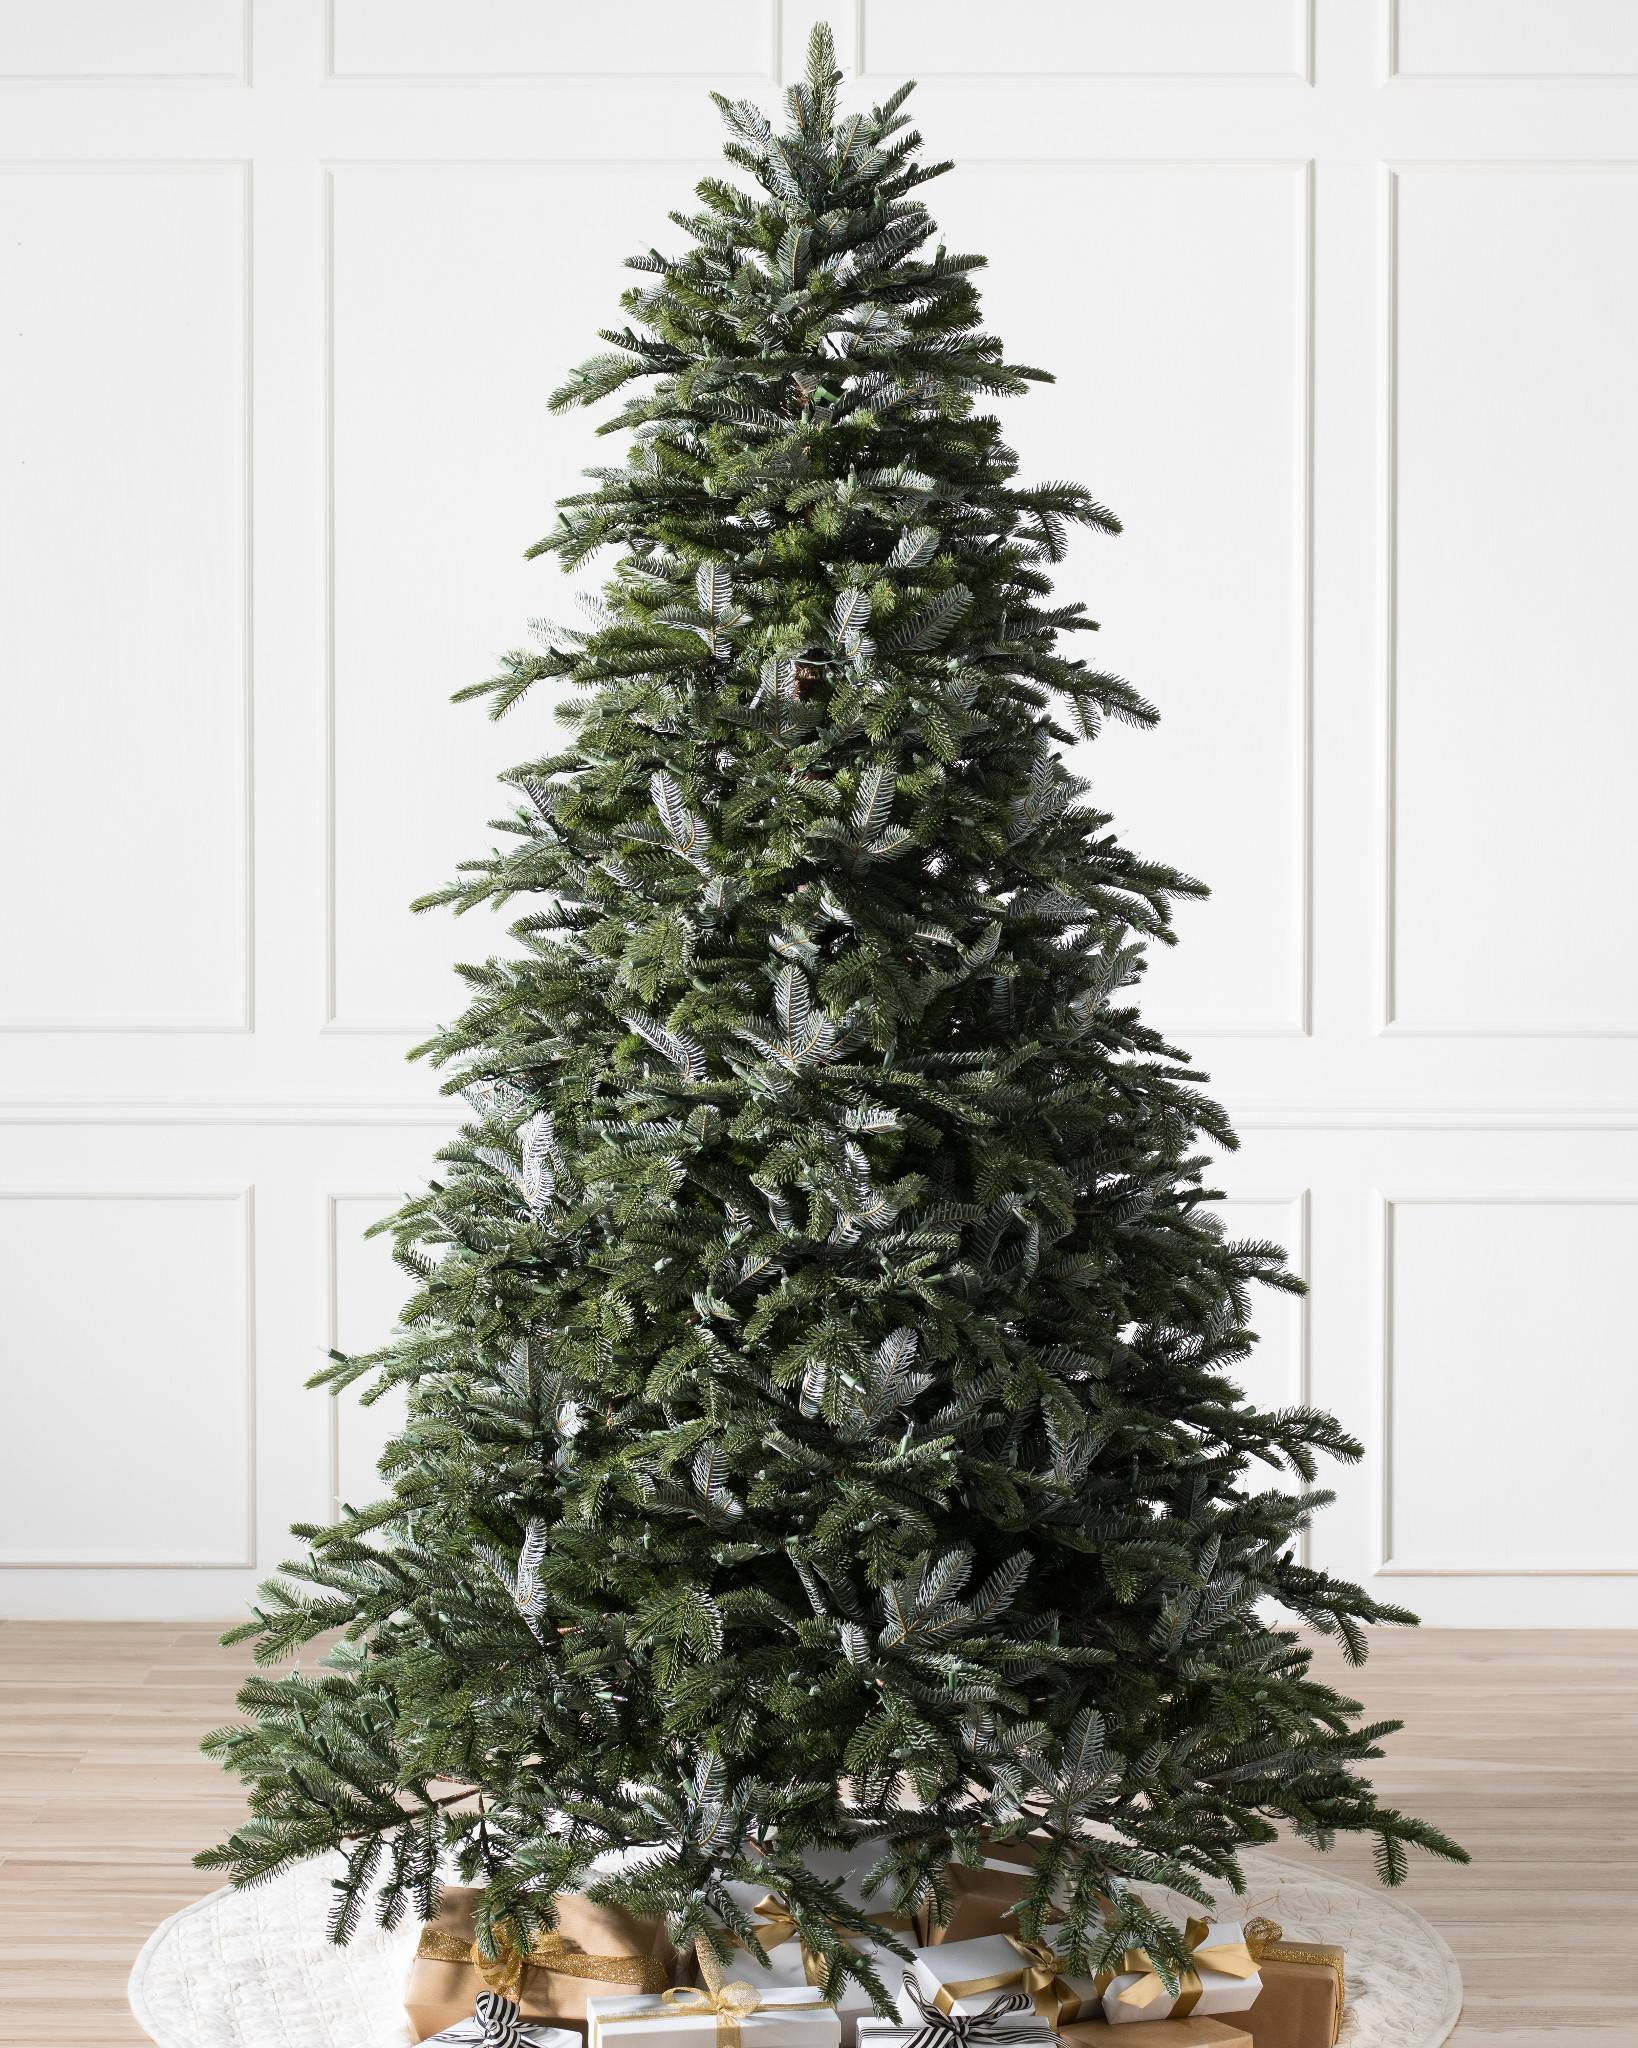 Artificial Christmas Tree Assembly Instructions.Bh Nordmann Fir Artificial Christmas Tree Balsam Hill